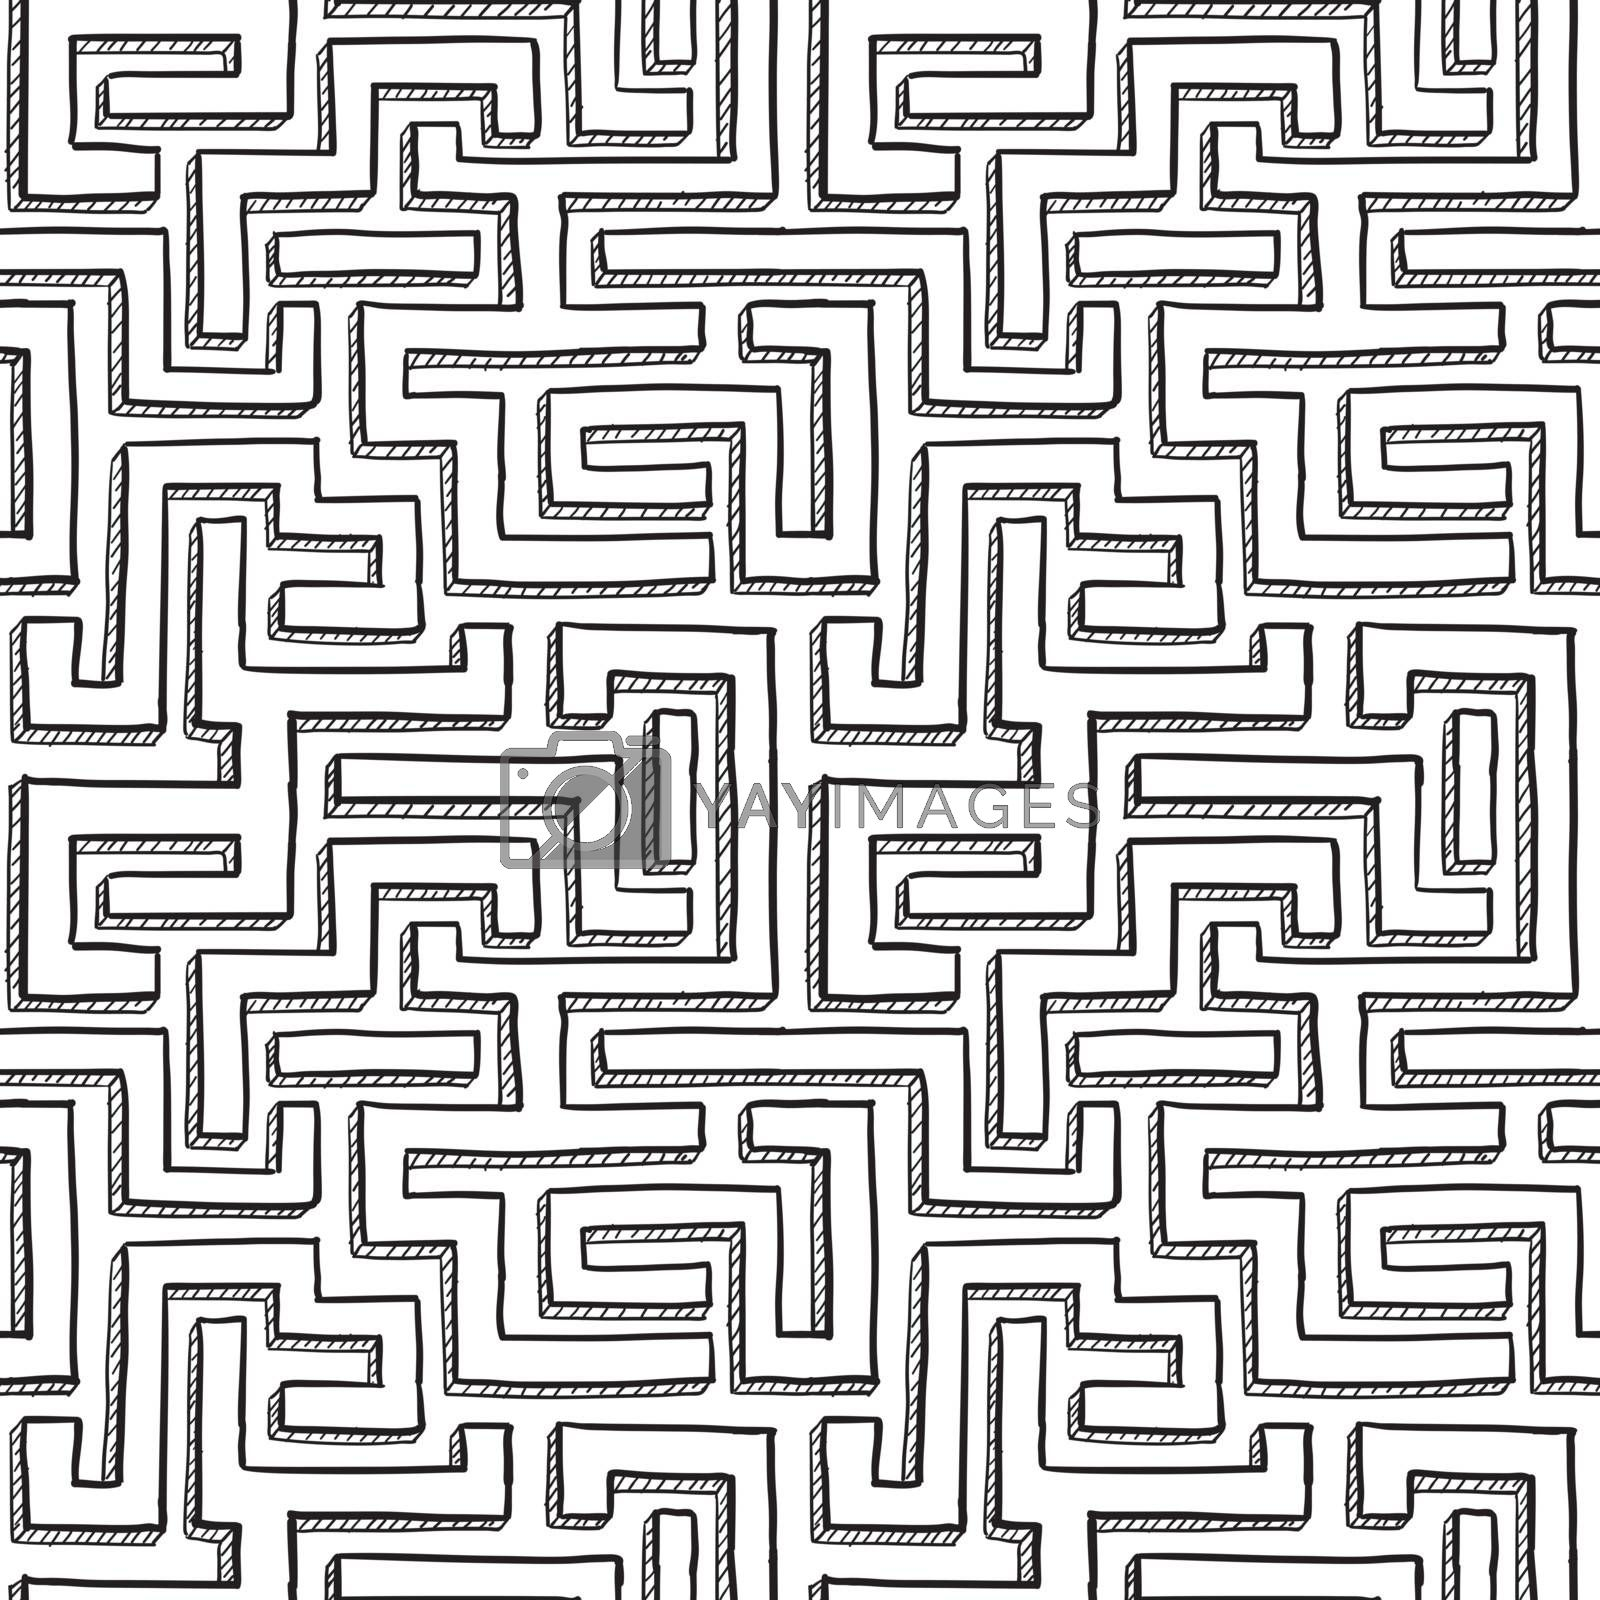 Doodle style seamless maze background illustration in vector format.